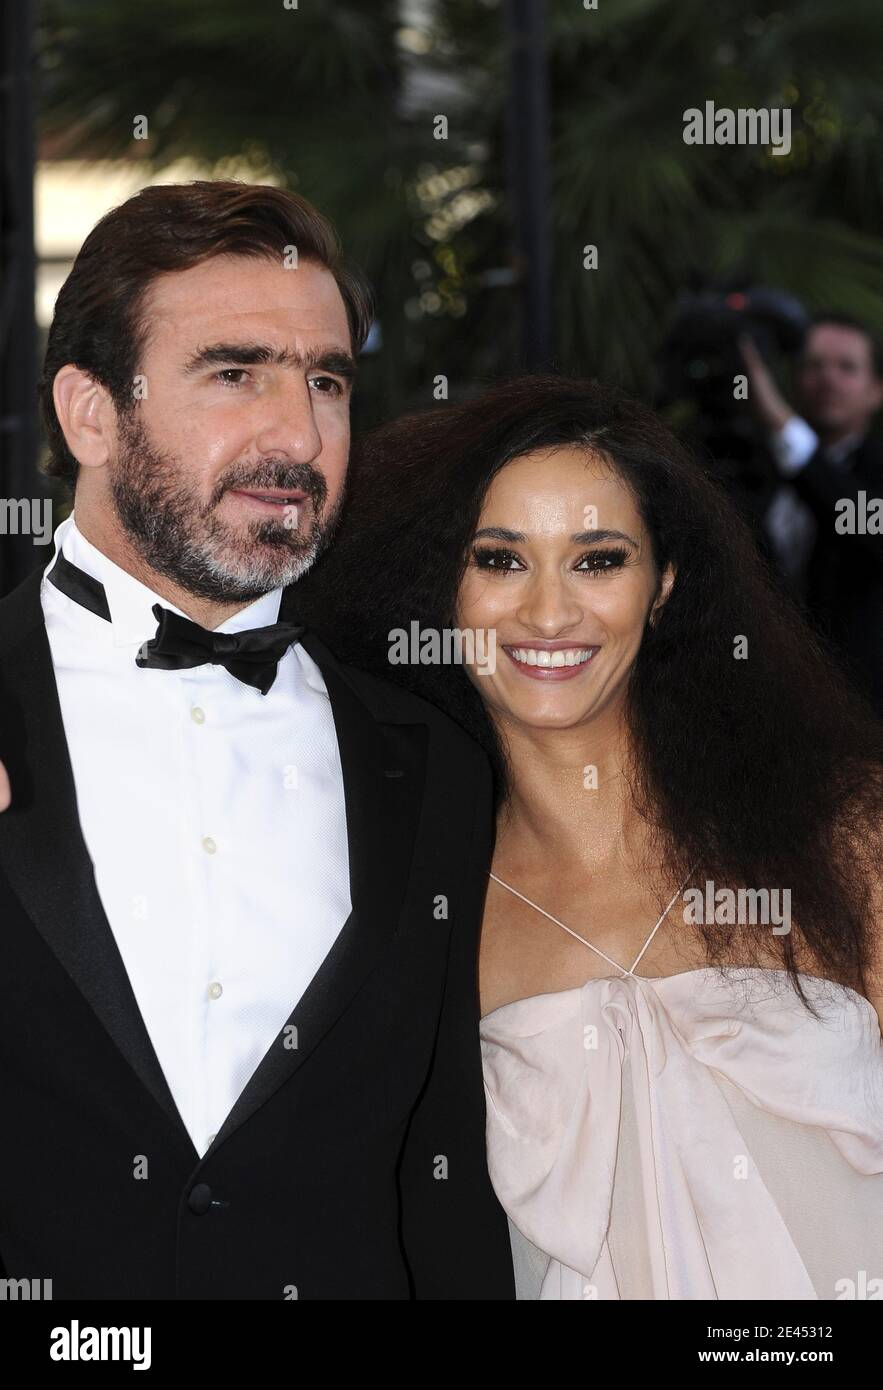 But what else do we know about his actress wife. Actor Eric Cantona And His Wife Rachida Brakni Arriving To The Screening Of Looking For Eric During The 62nd Cannes Film Festival At The Palais Des Festivals In Cannes France On May